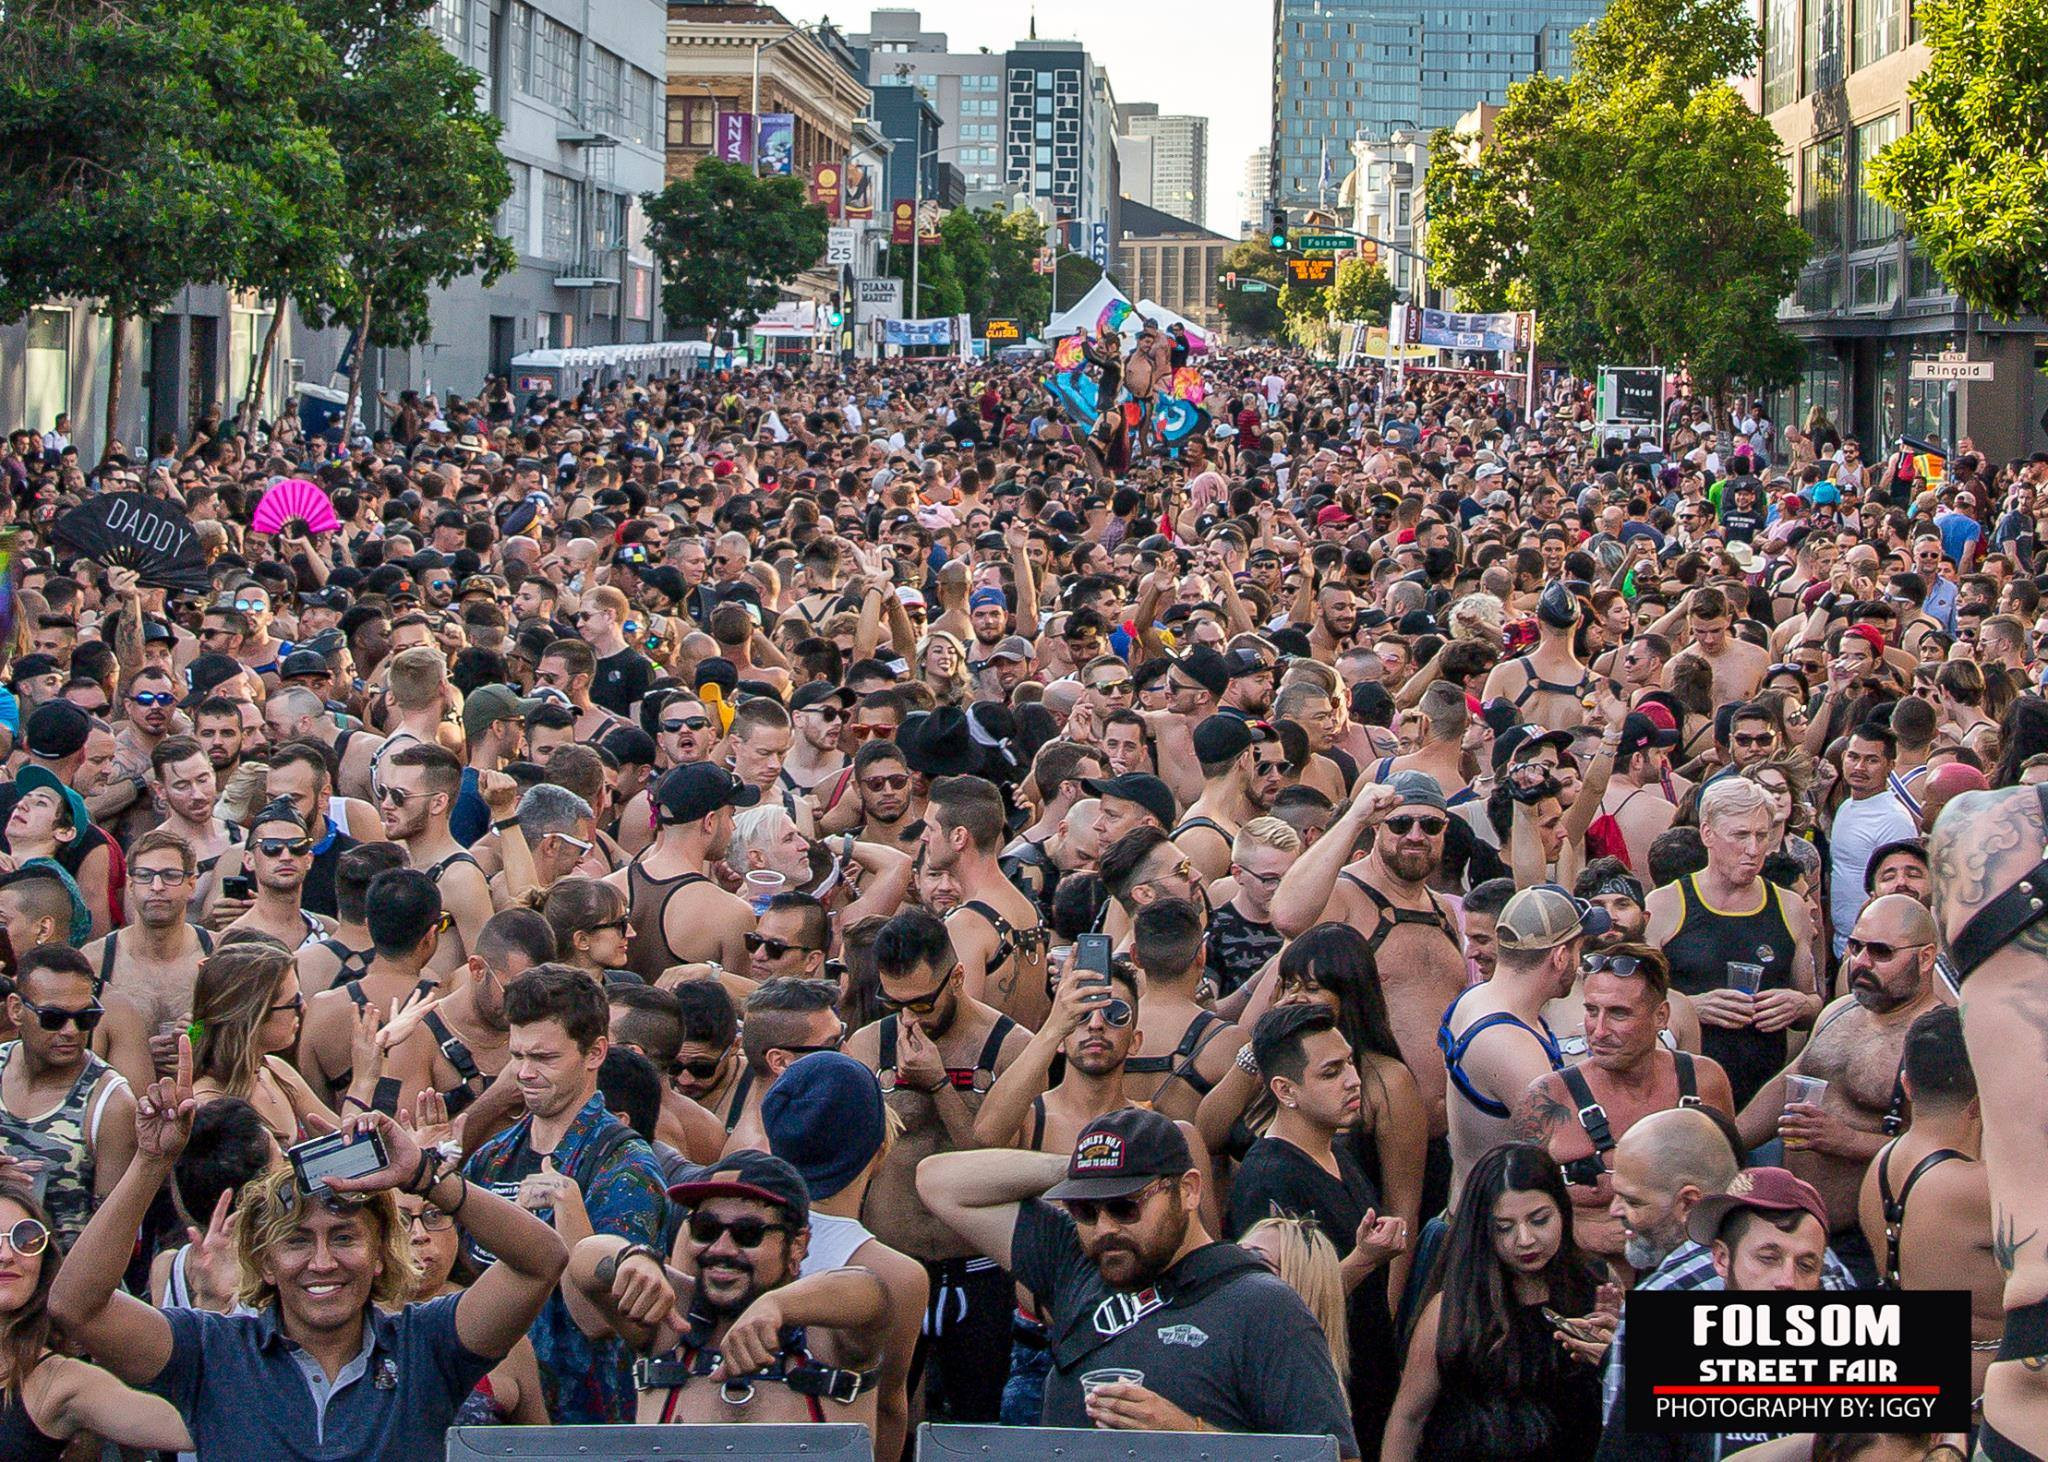 Yes sir! Folsom Street Fair and 5 events of the fall party season